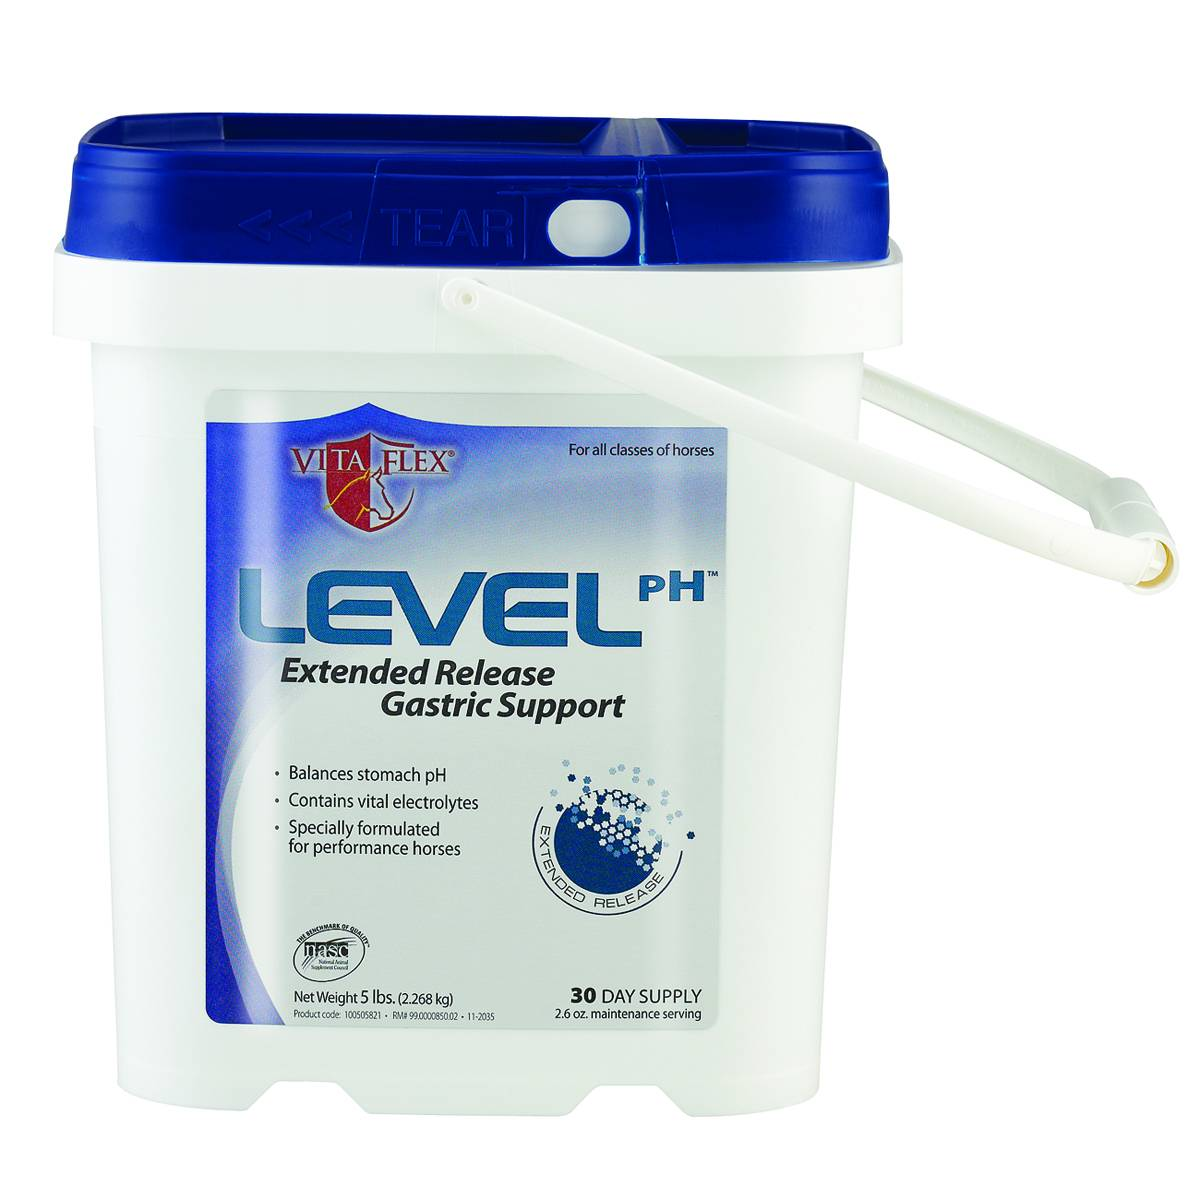 Vita Flex Level Ph Extended Release Gastric Support